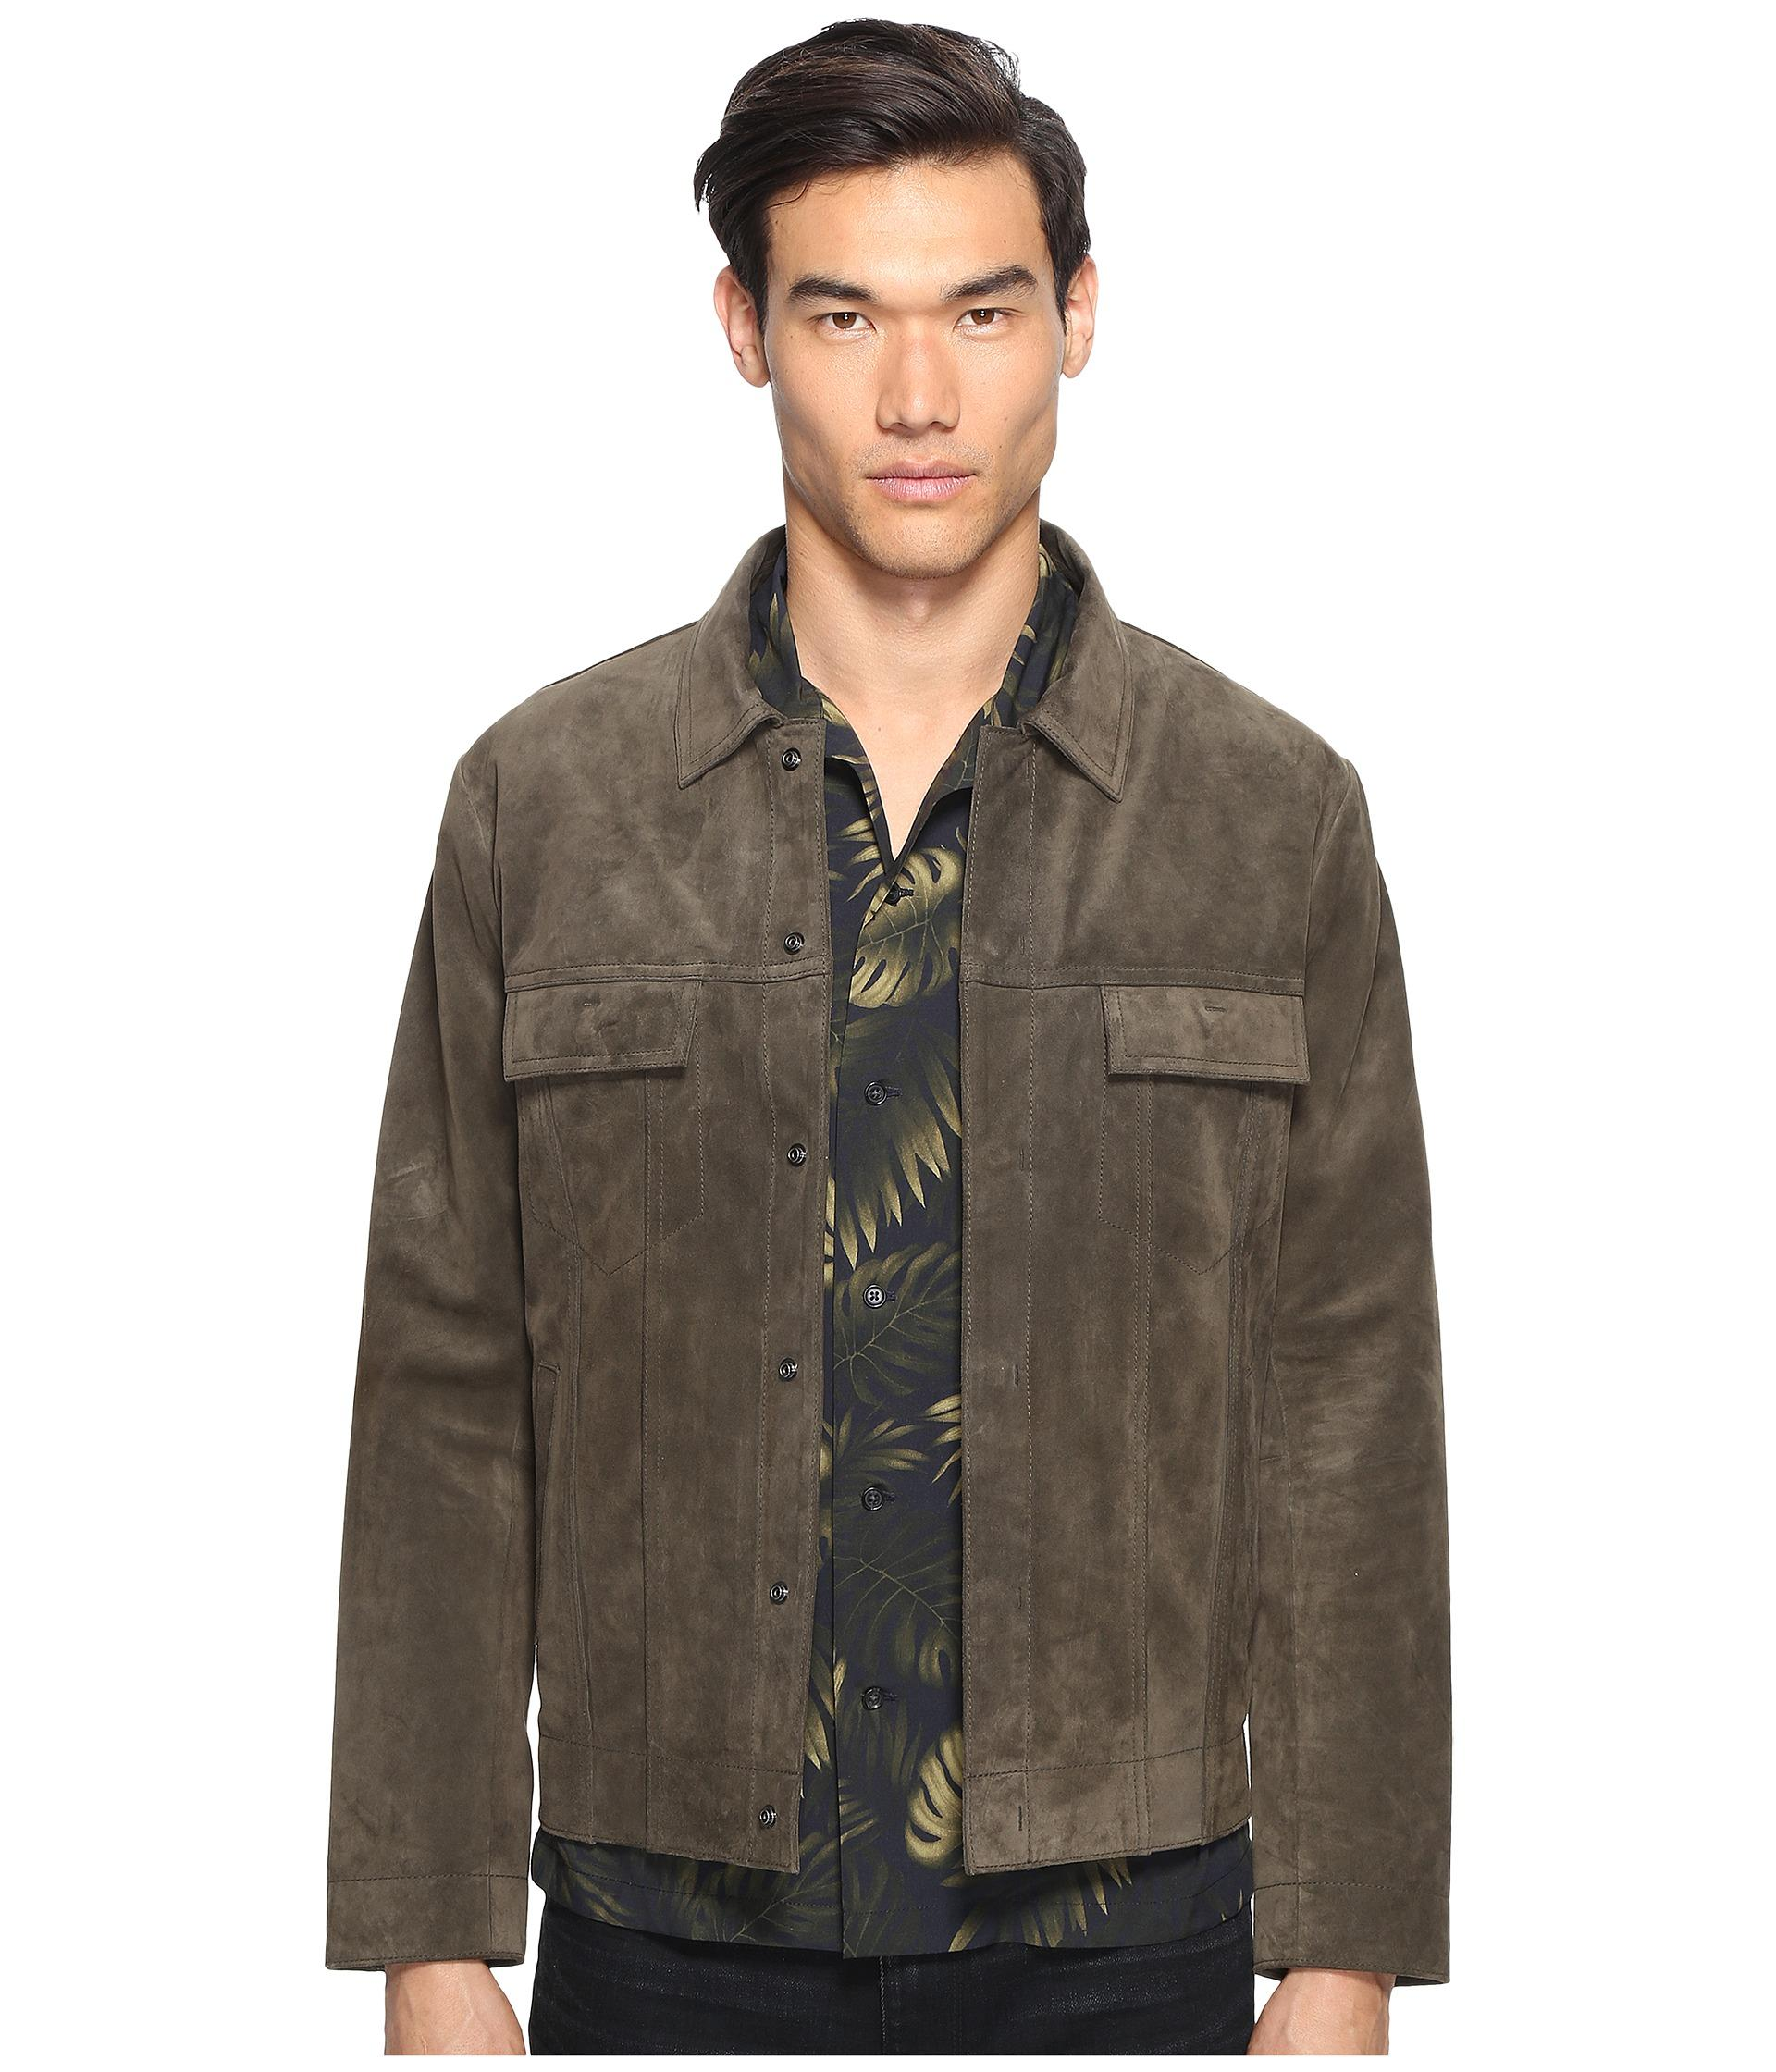 Vince Suede Trucker Jacket in Green for Men - Save 43%   Lyst